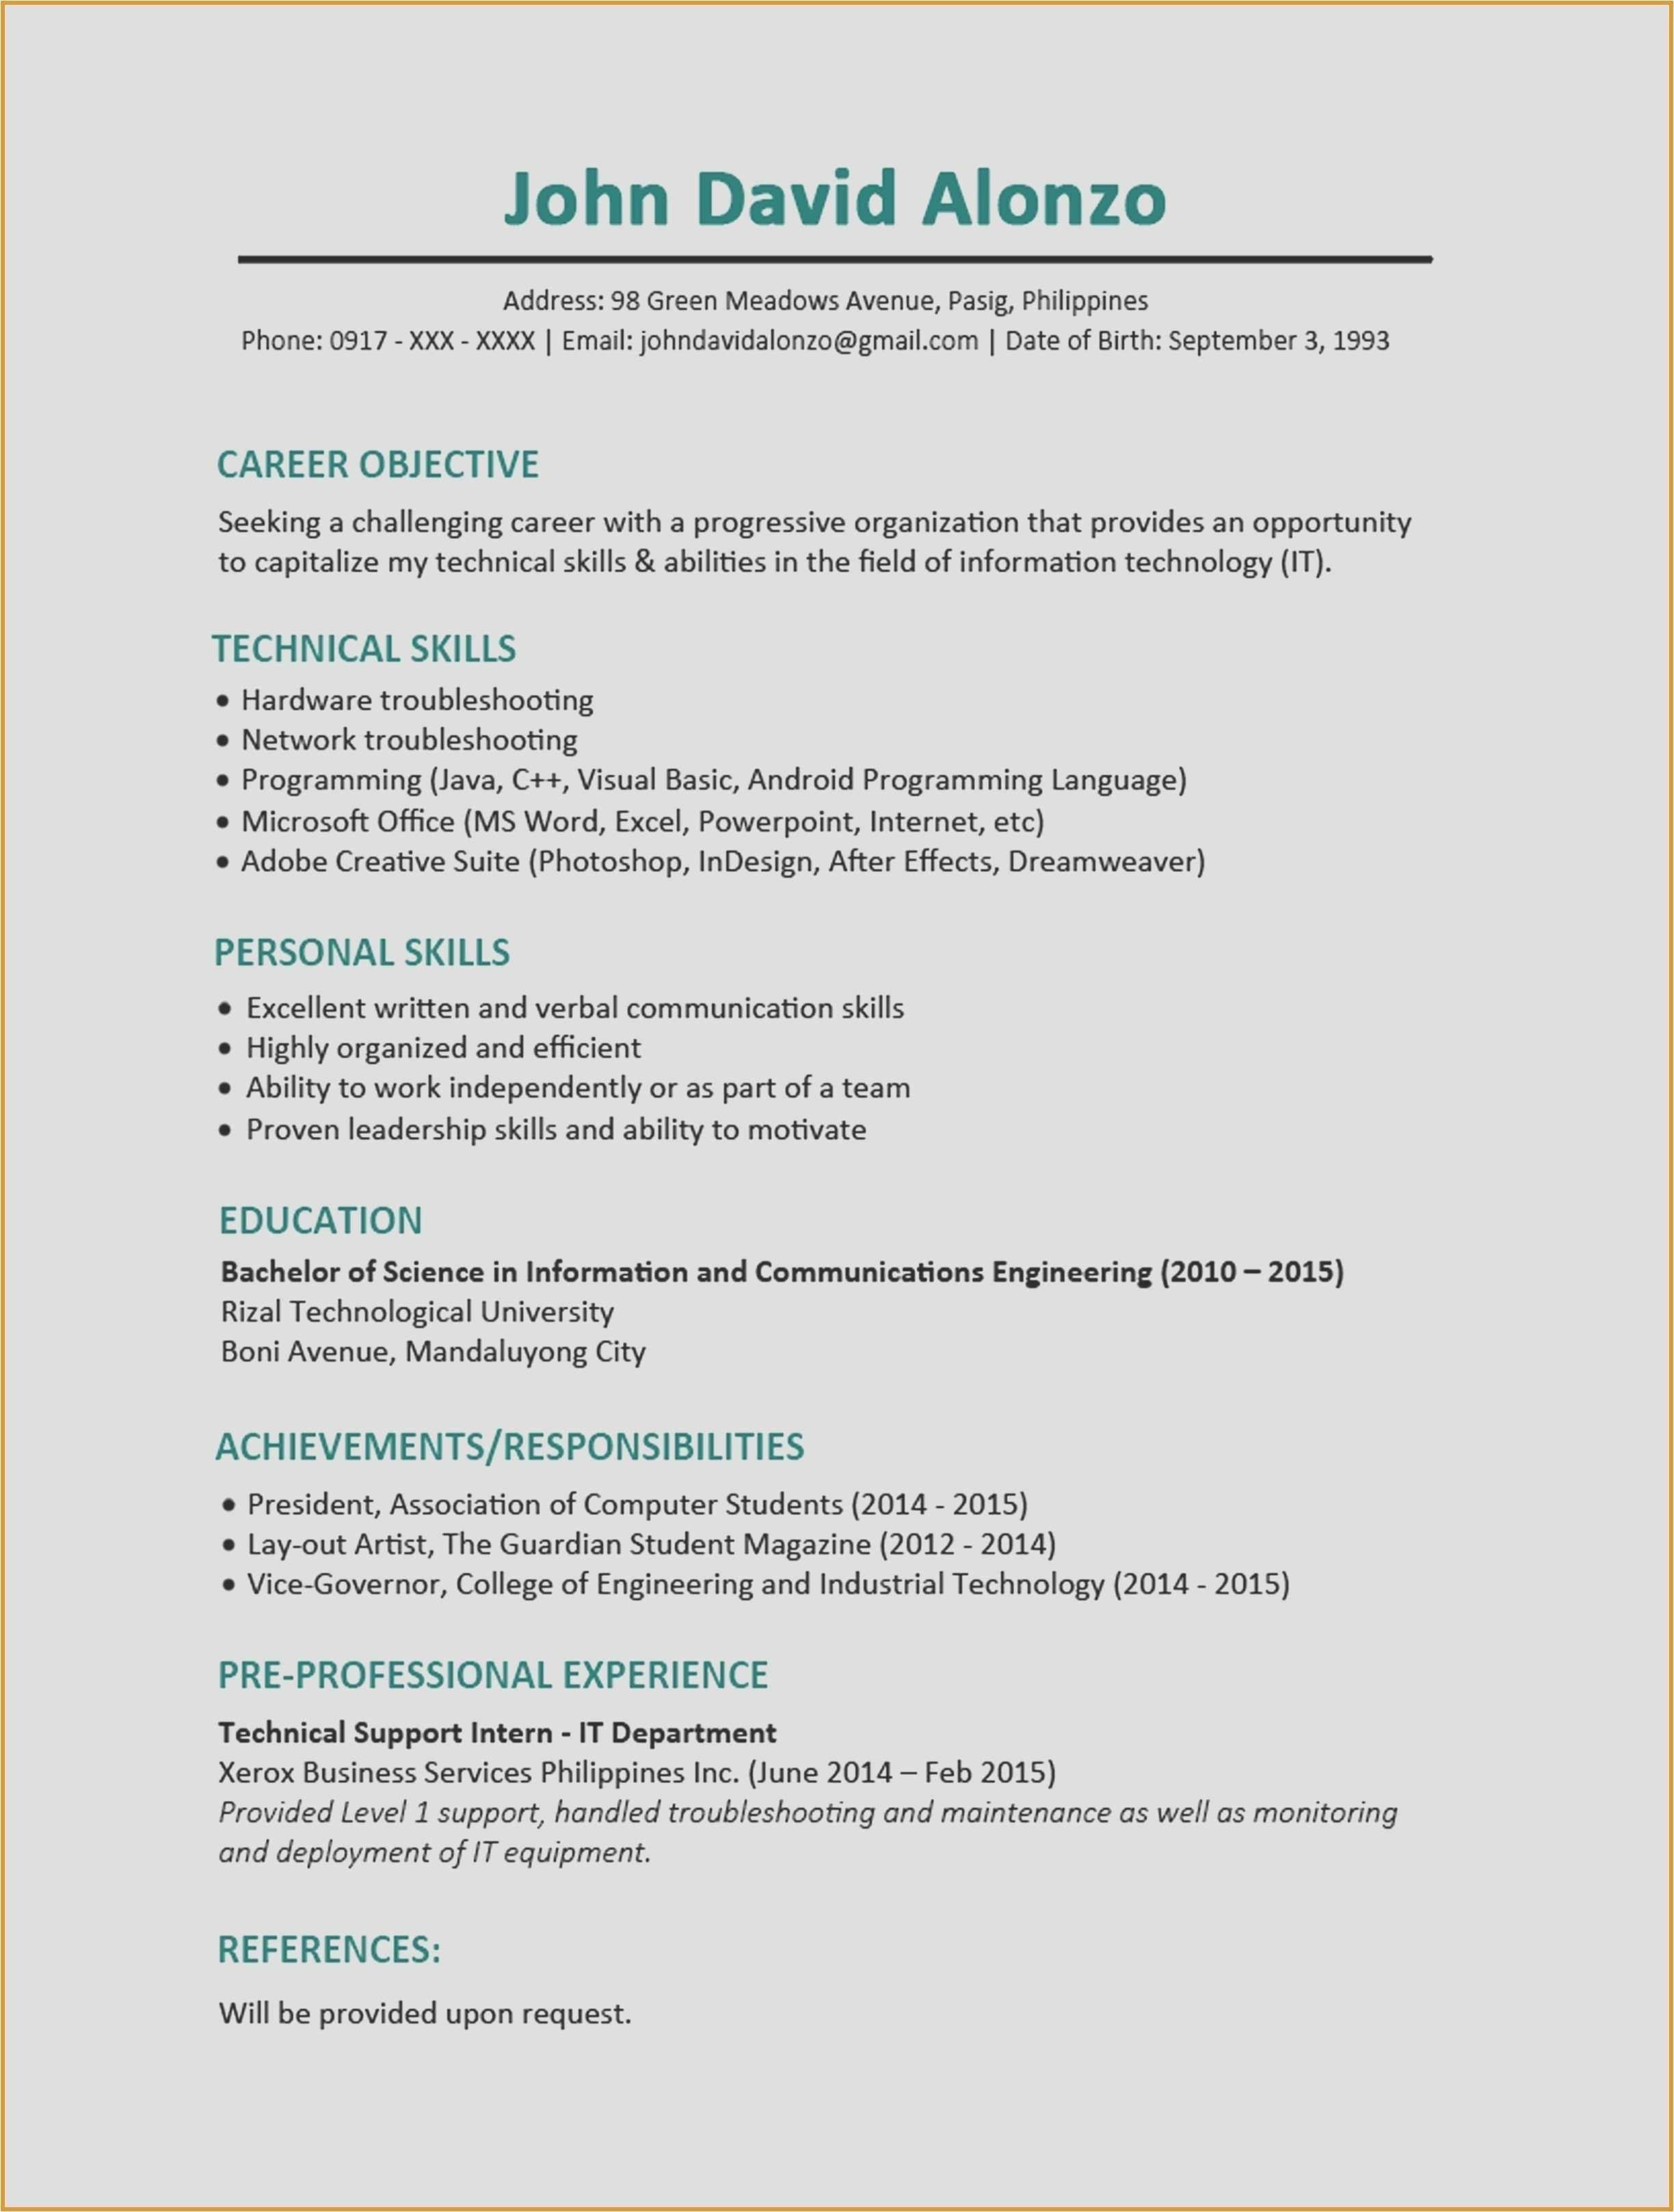 Listing Certifications On Resume Fresh Unique How to List